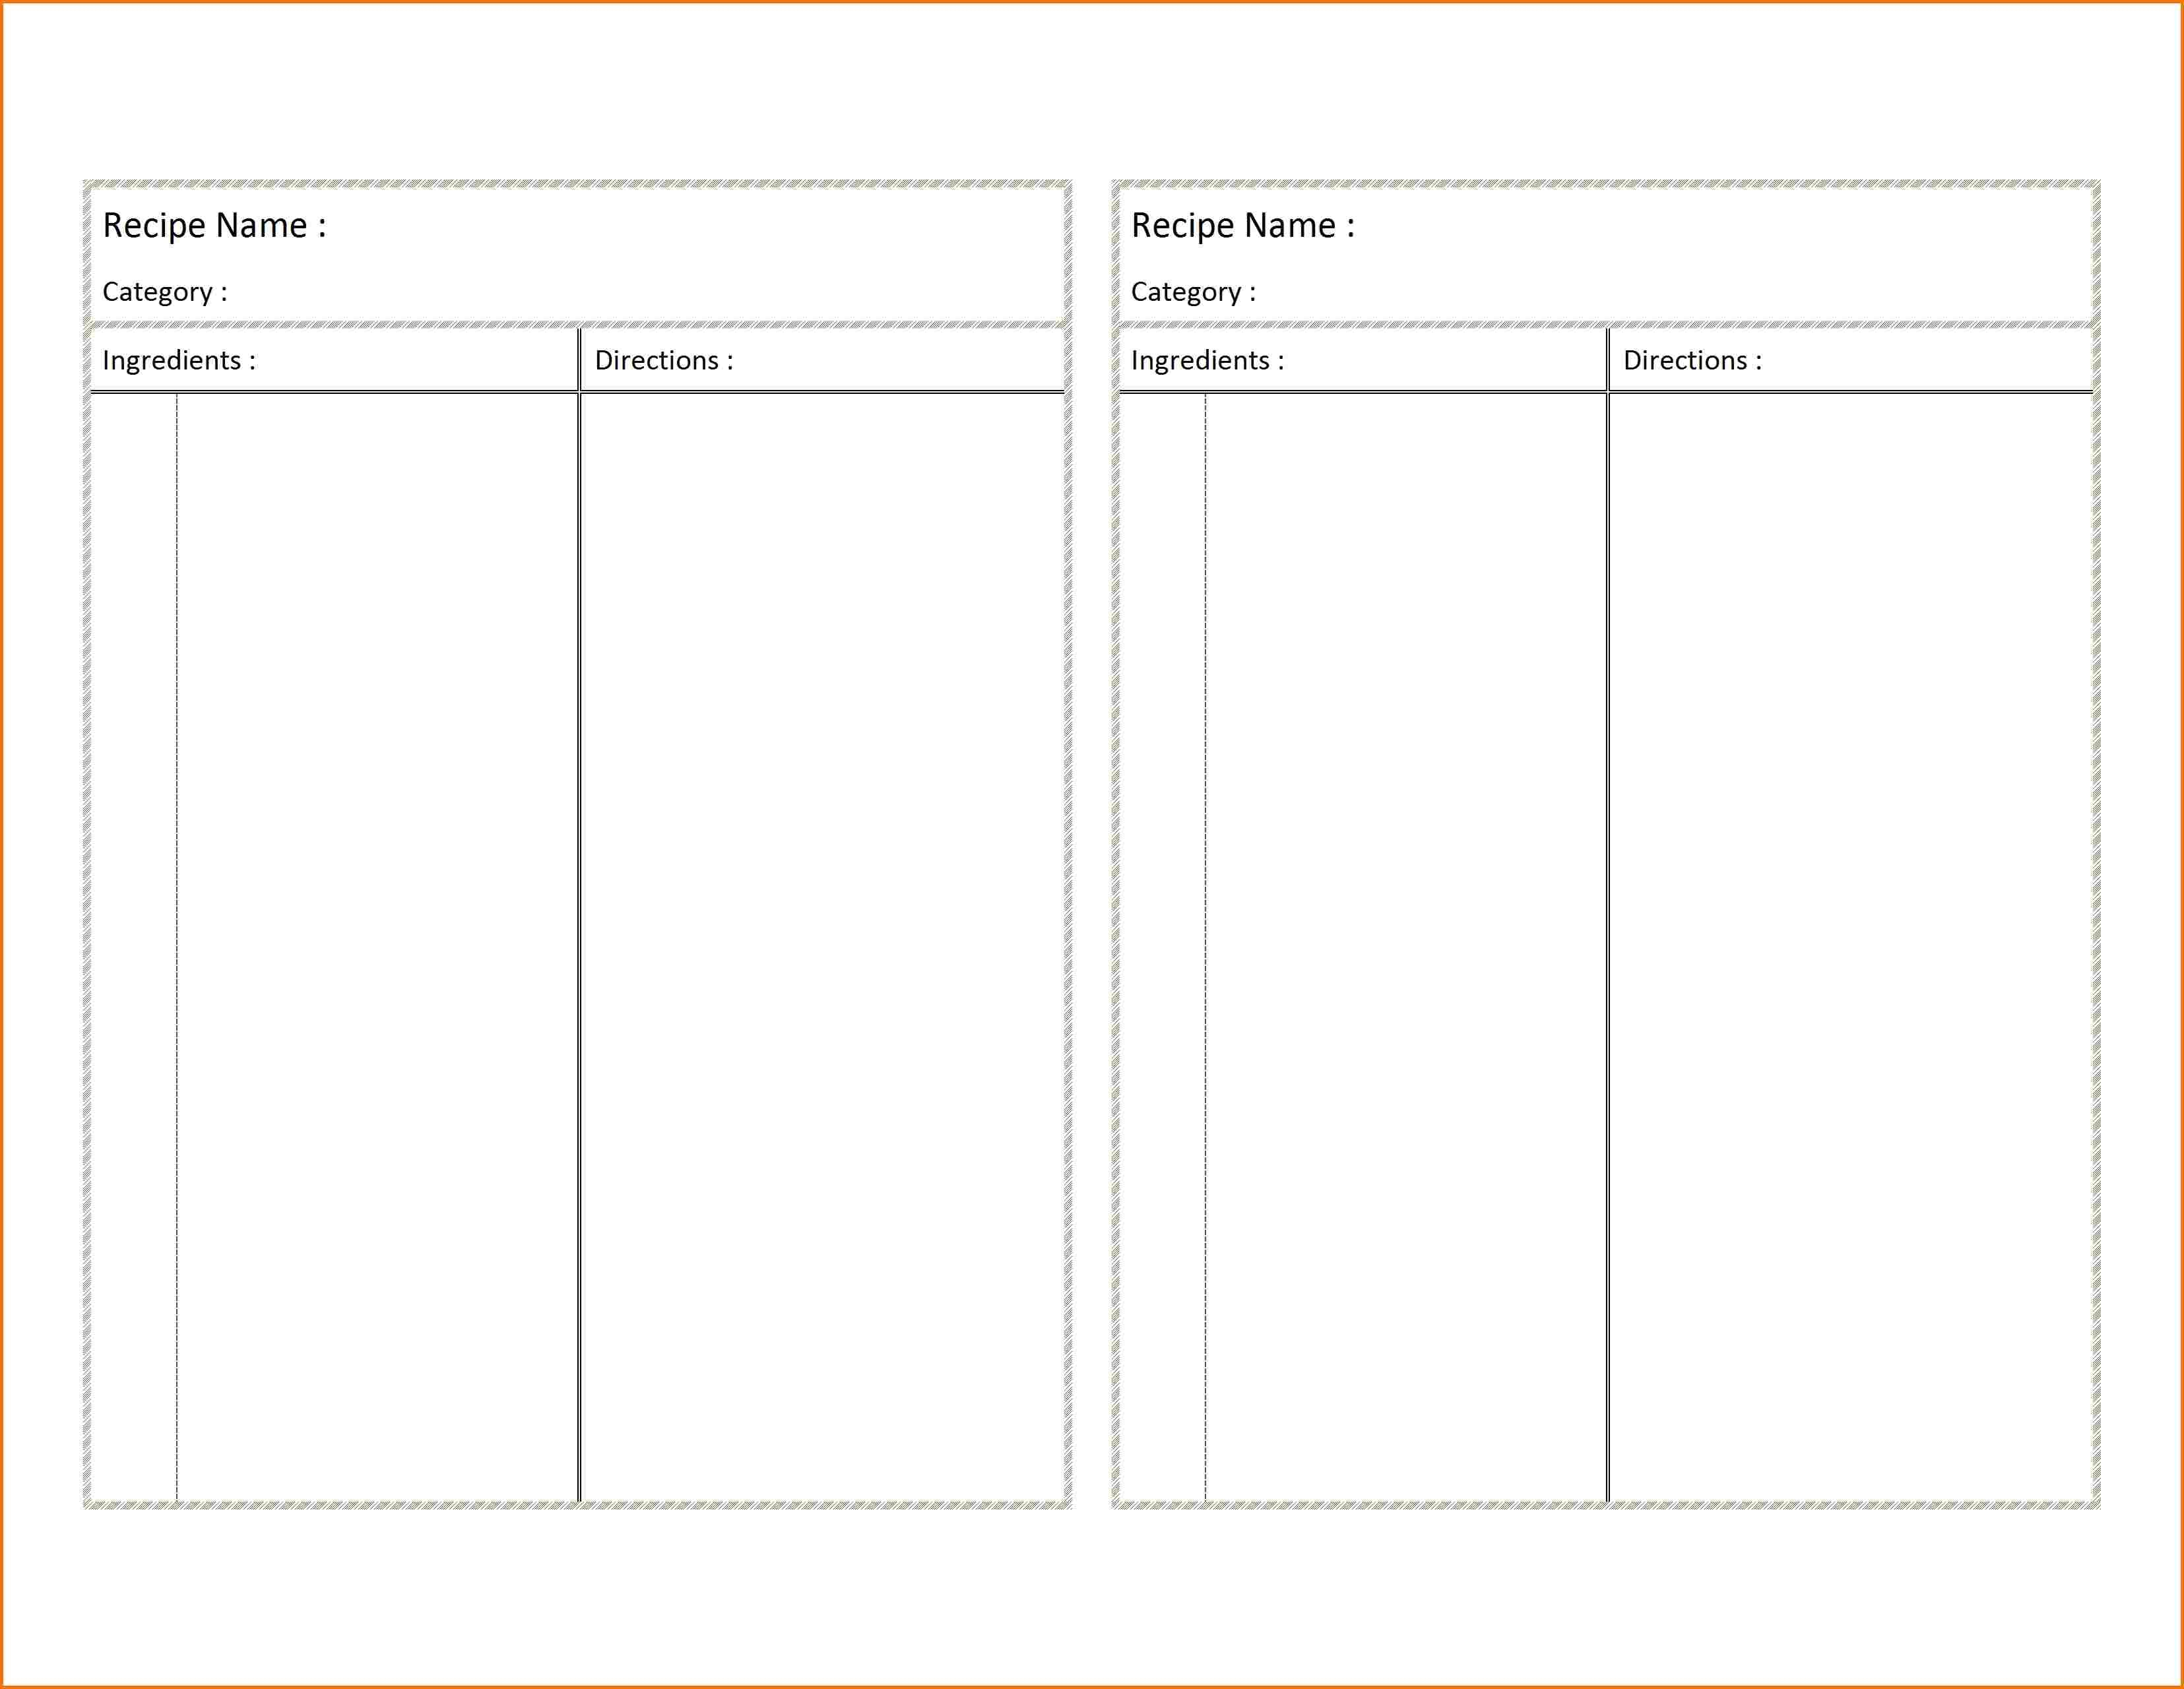 Recipe Card Template For Word  Authorization Letter Pdf With Regard To Microsoft Word Recipe Card Template